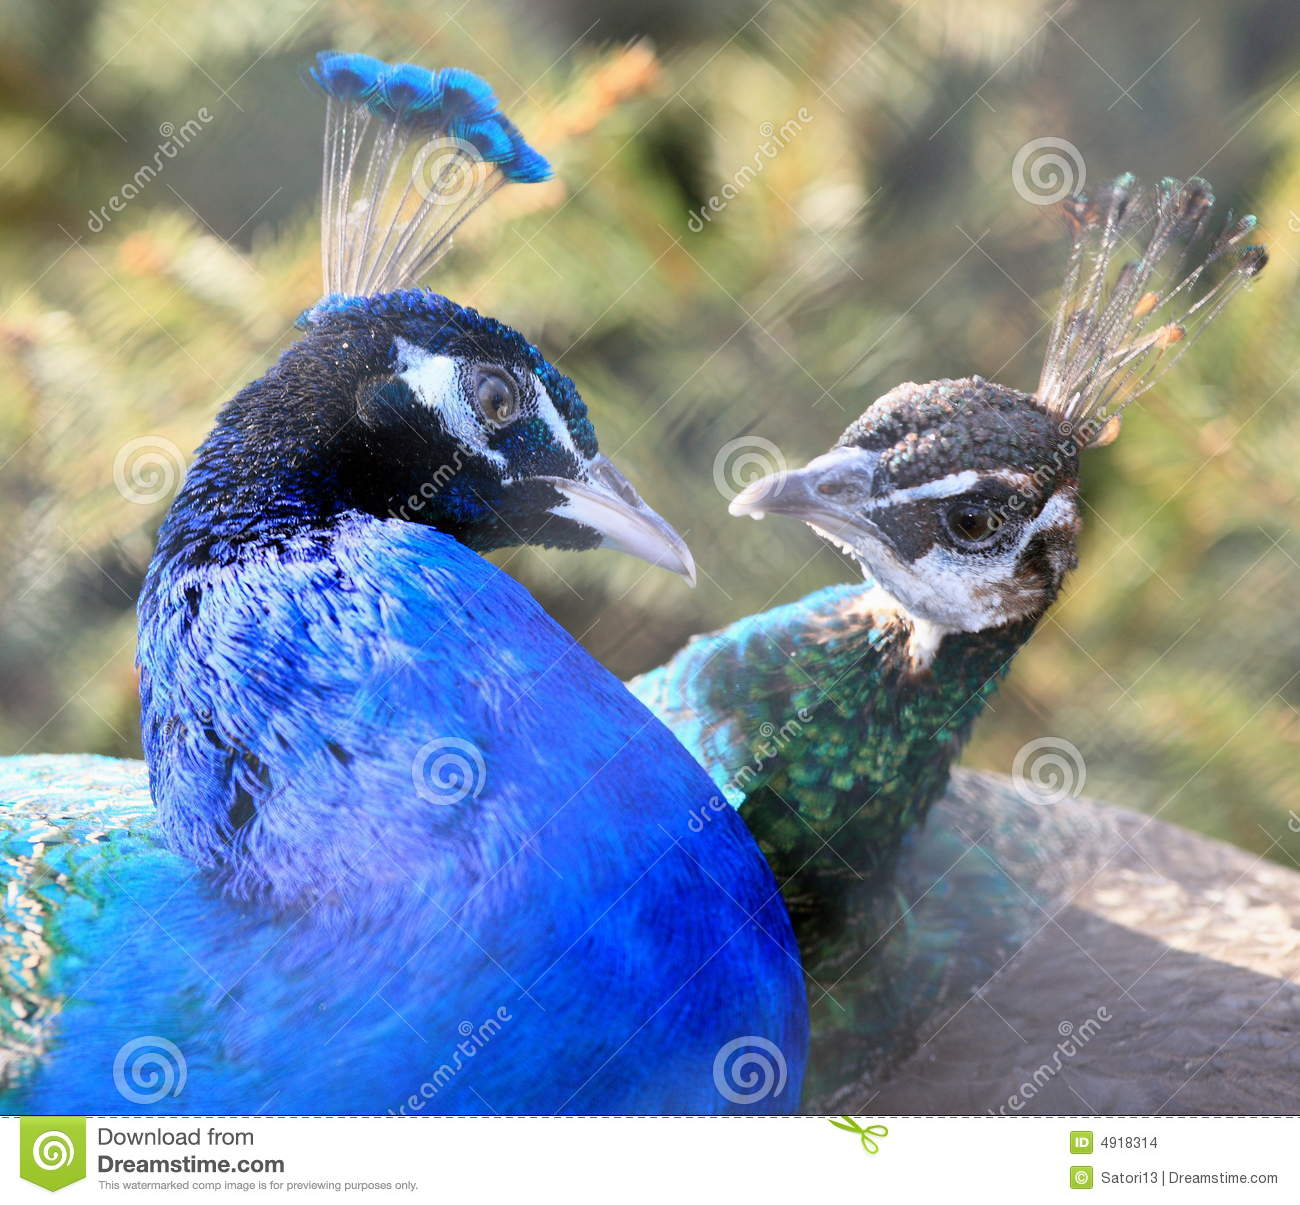 I Love U Hd Wallpapers Free Download Peacocks In Love Stock Photo Image Of Animal Feathers